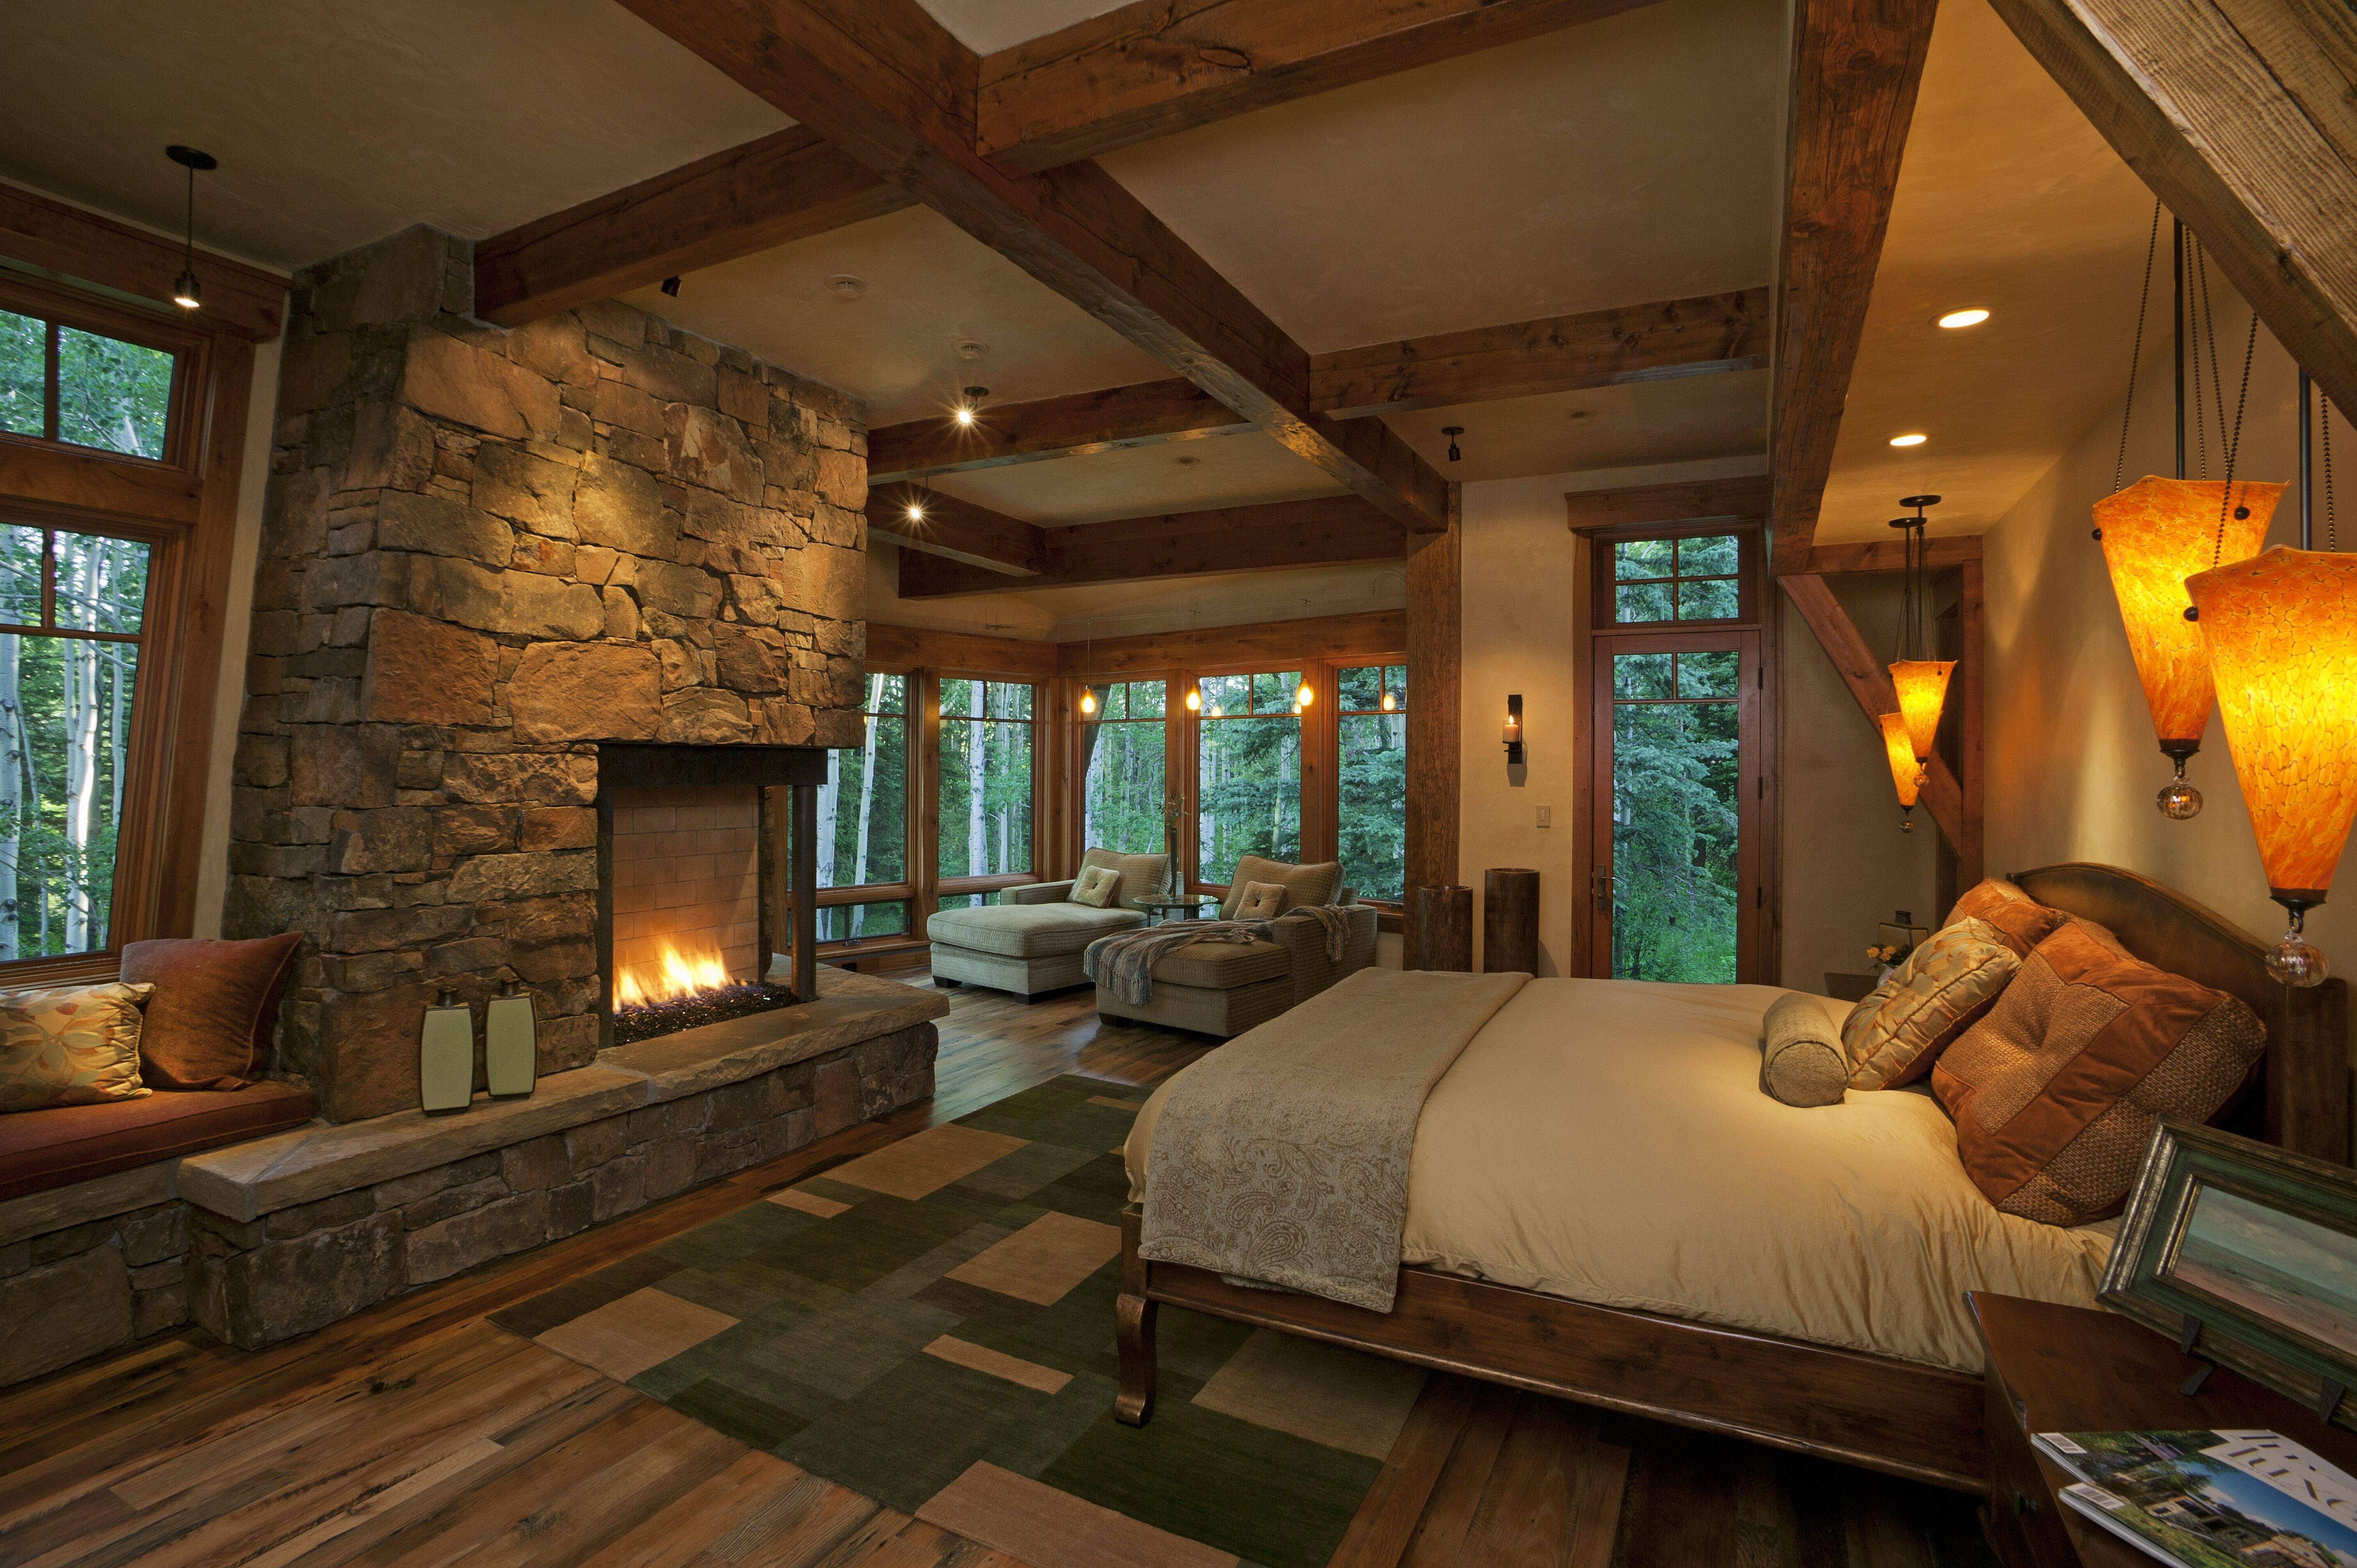 Cabin Bedroom Decorating Ideas Home Design Log BedroomsRustic